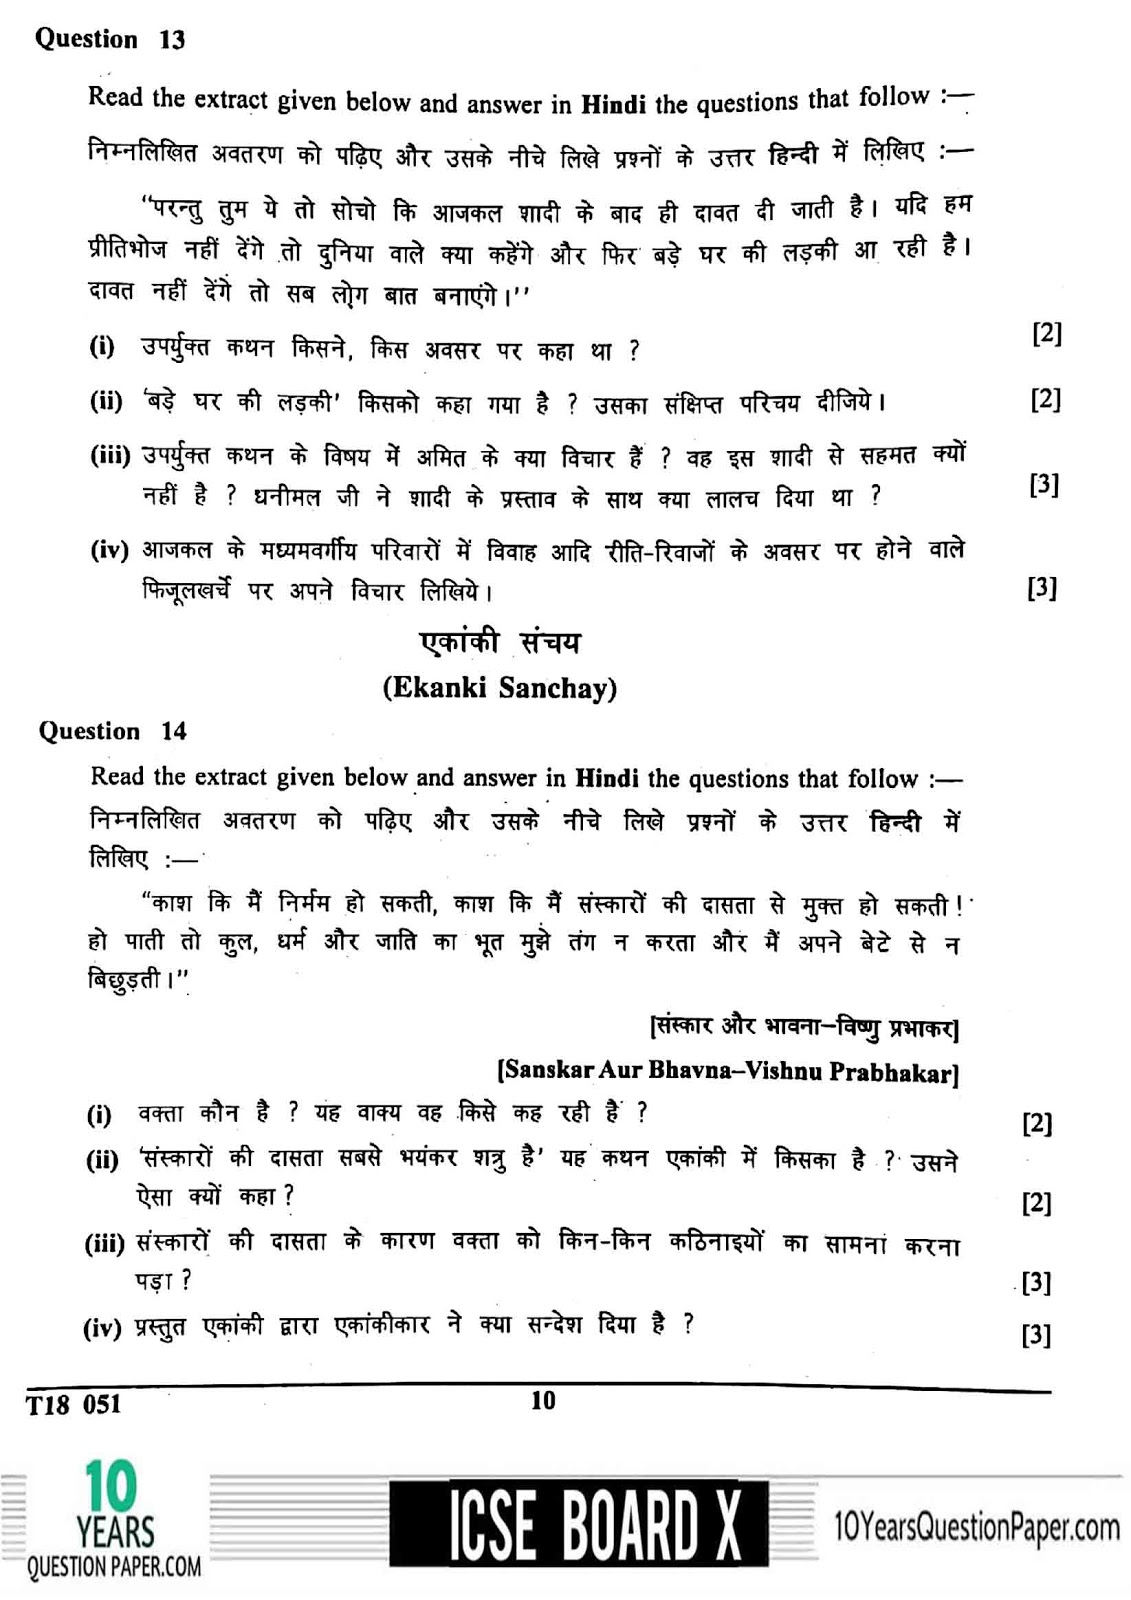 ICSE Board 2018 class 10th Hindi question paper page-10